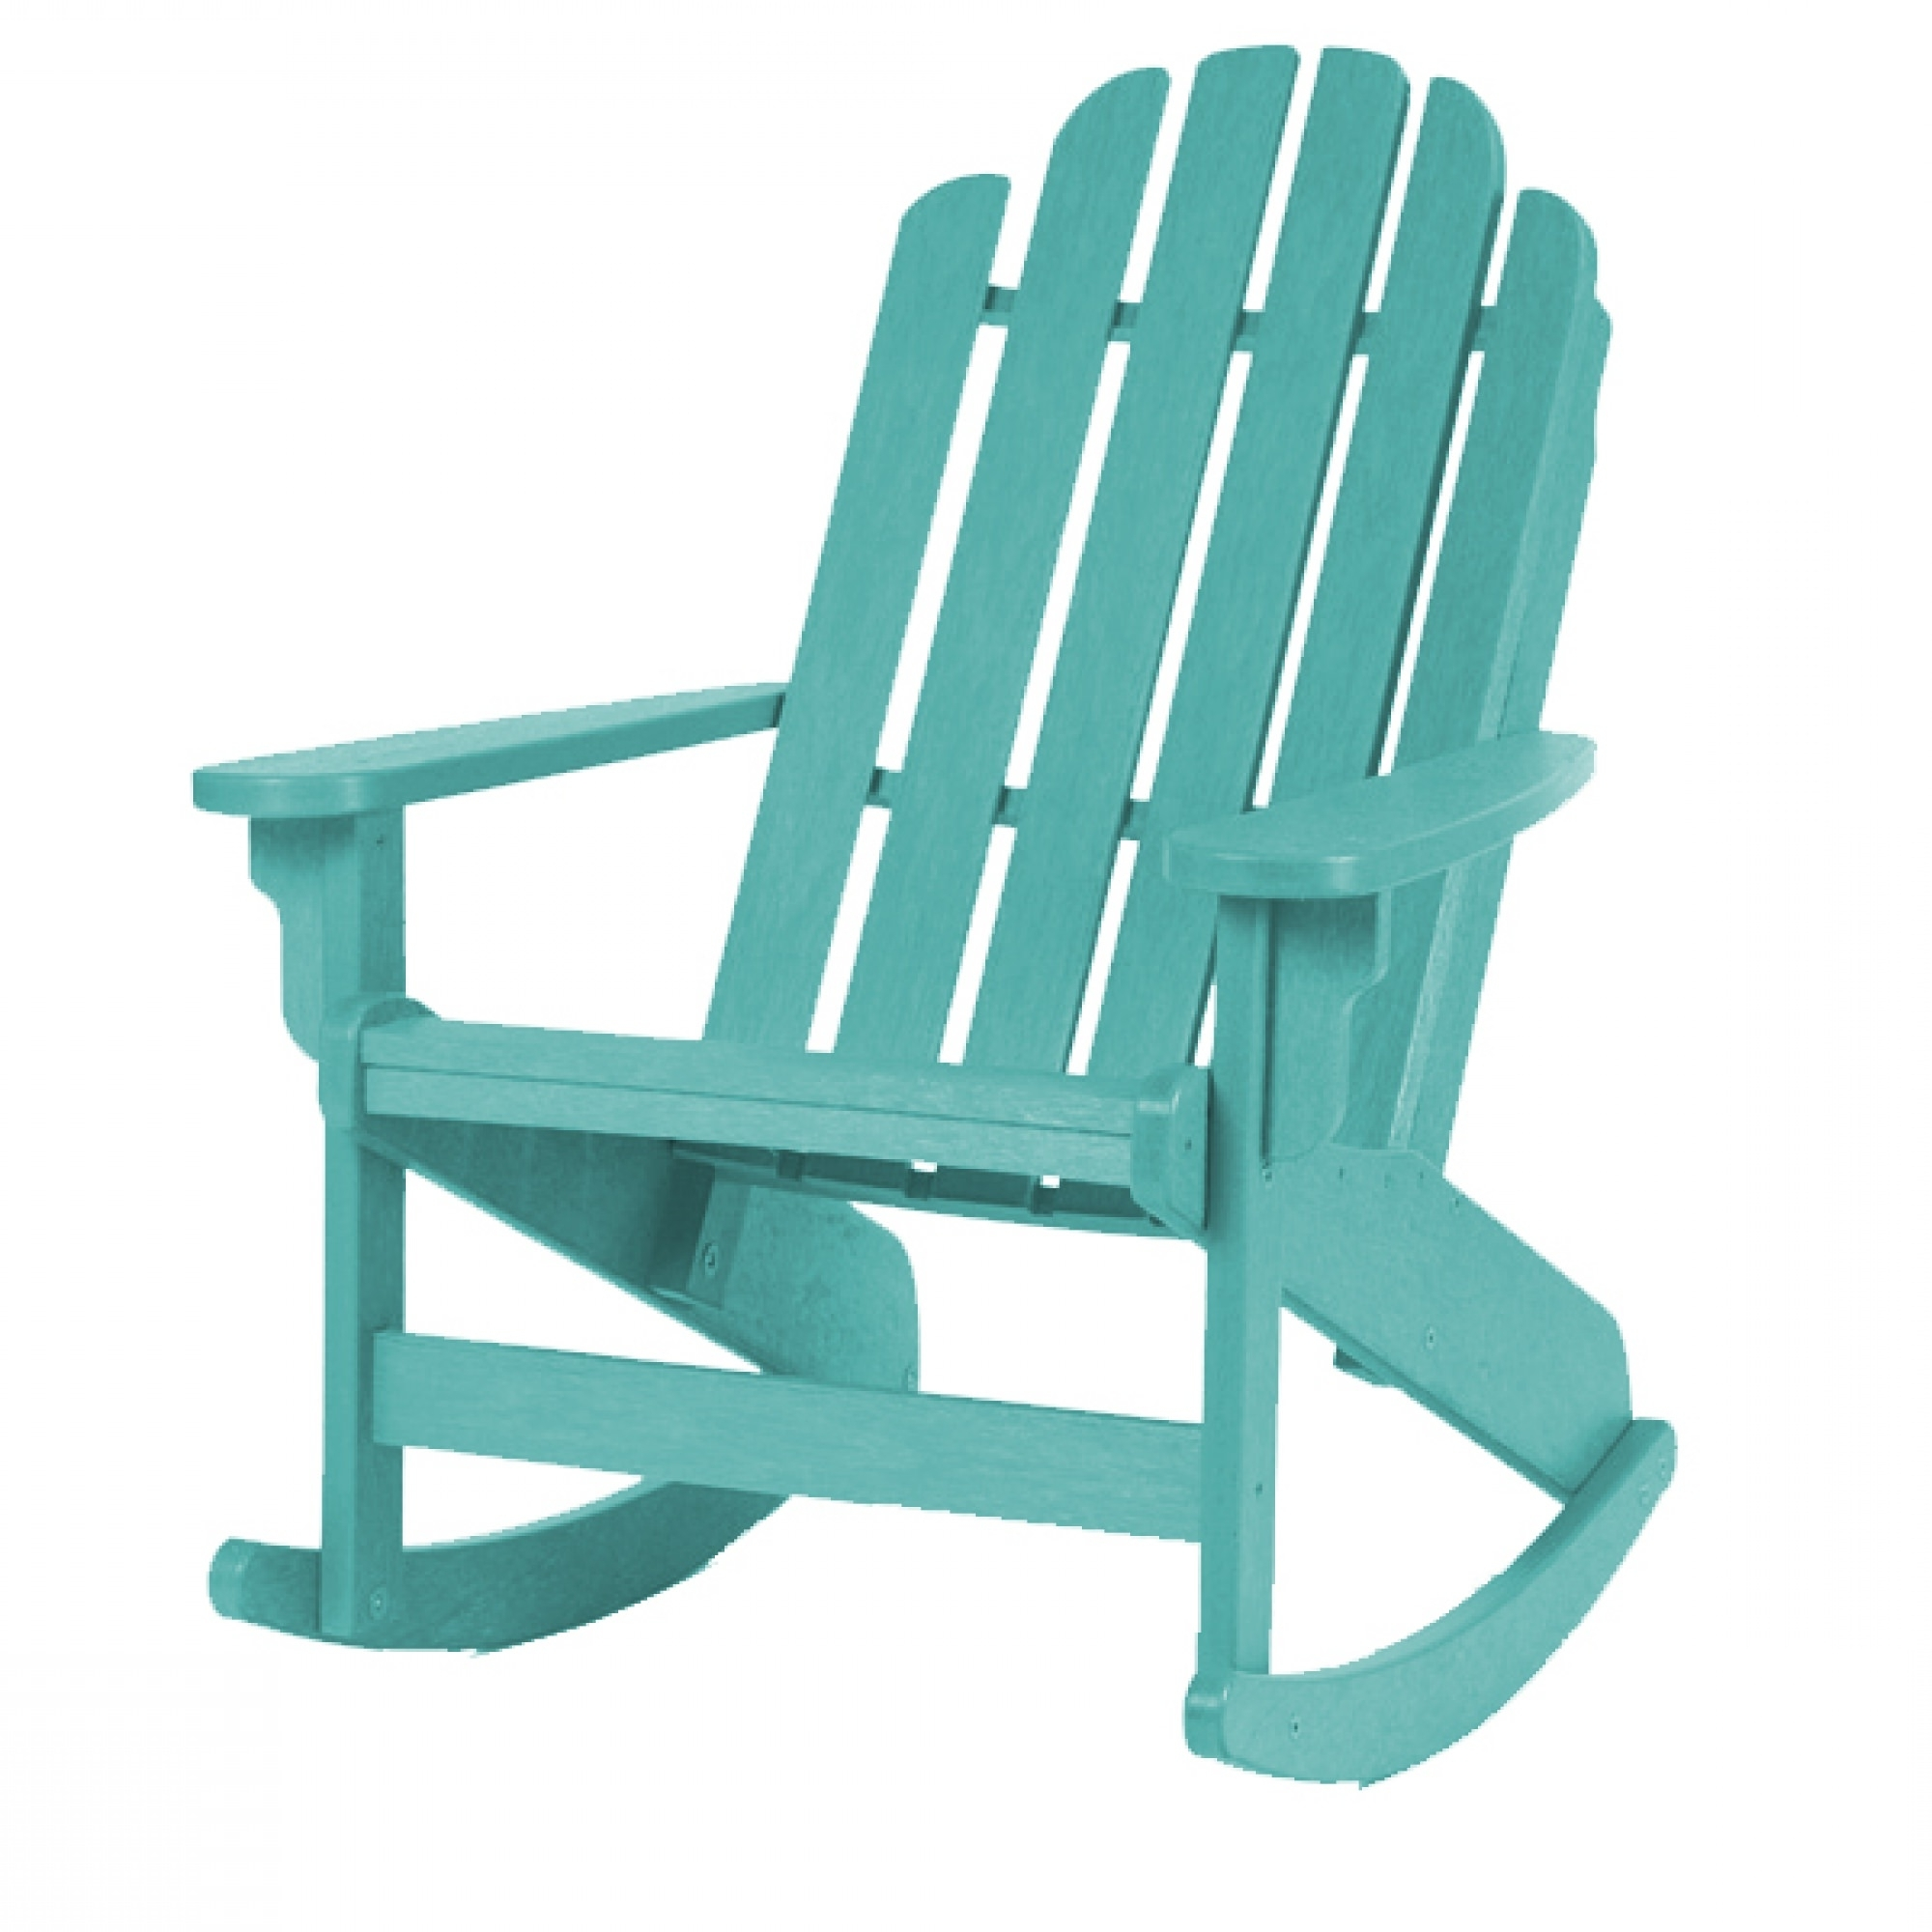 Best And Newest Furniture: Inspiring Patio Furniture Ideas With Exciting Adirondack With Rocking Chairs At Lowes (View 1 of 20)